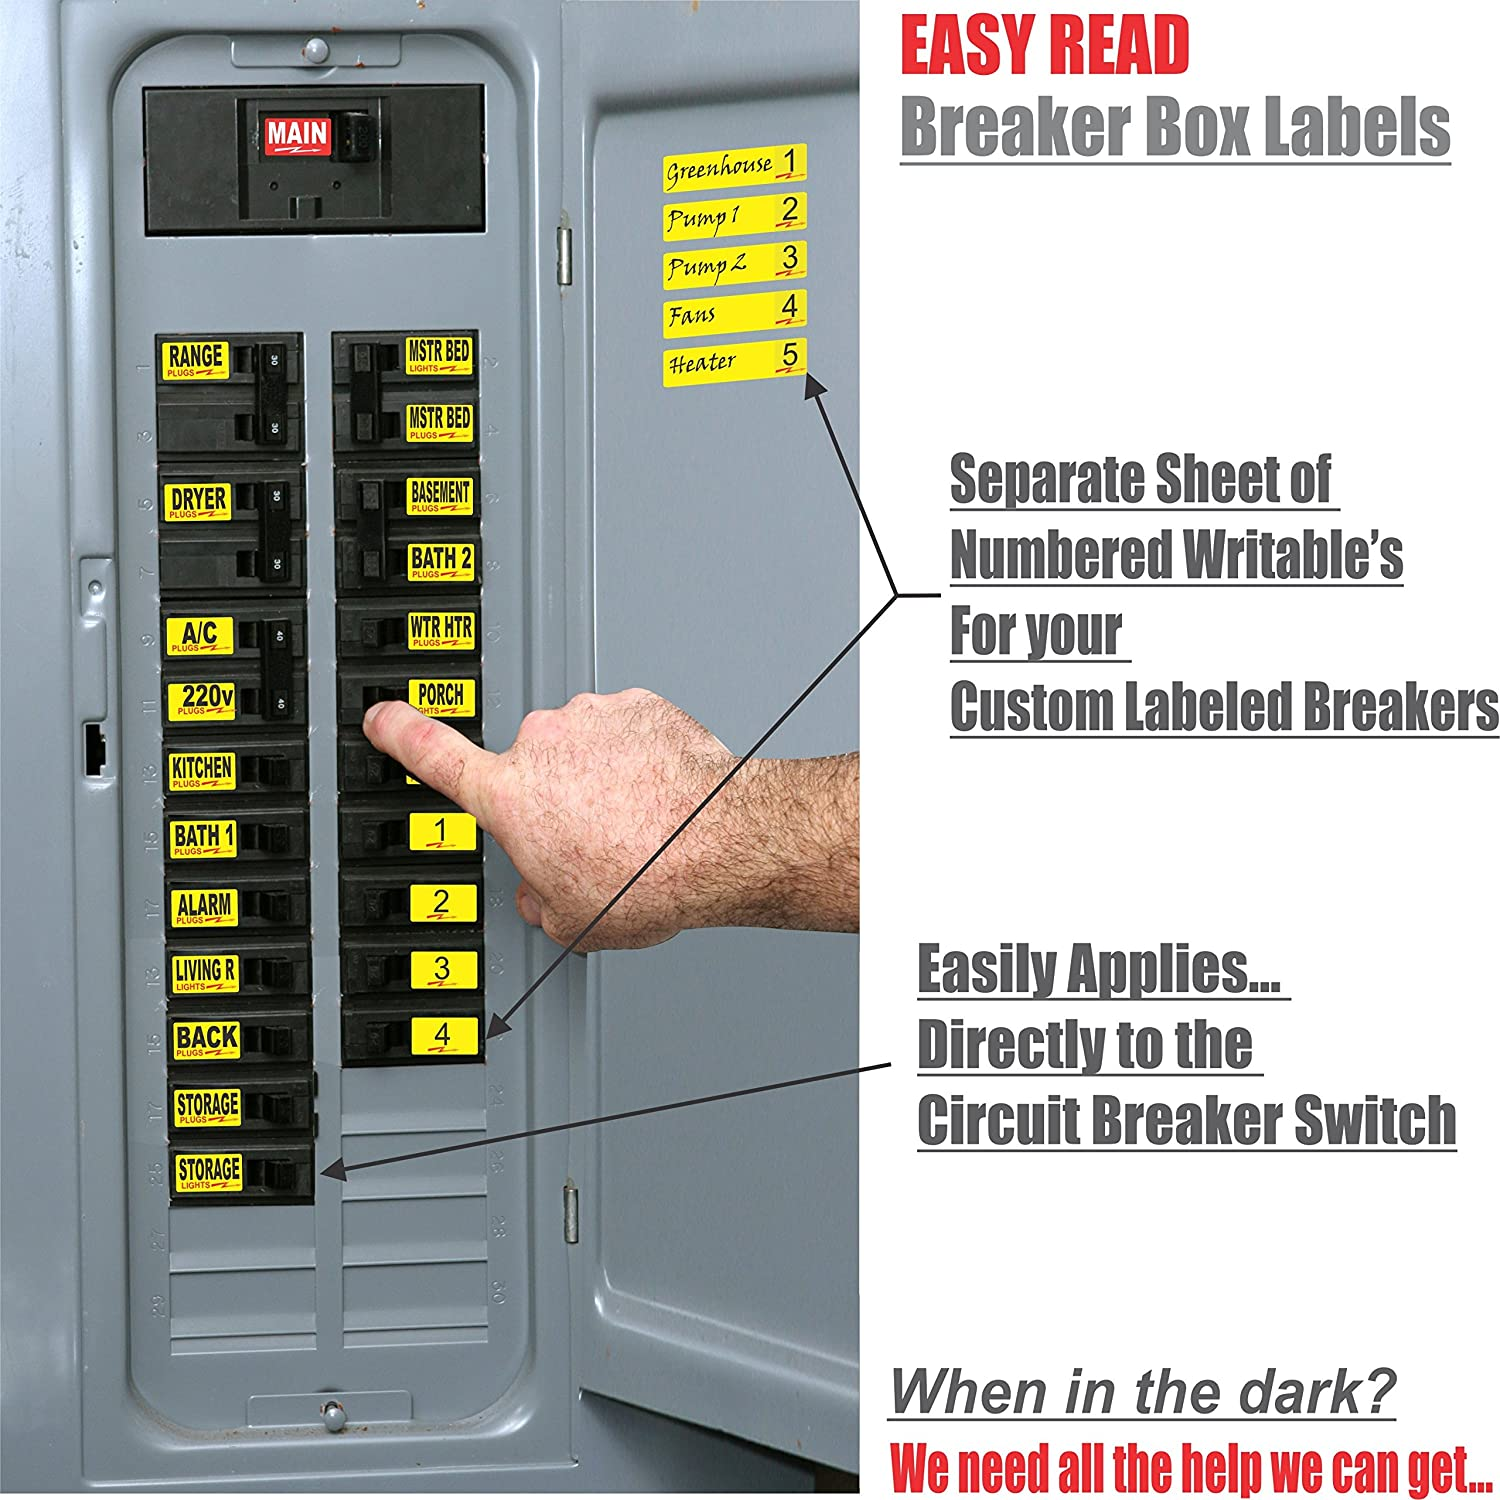 [SODI_2457]   Amazon.com: Circuit Breaker Decals - 105 Tough vinyl labels for Breaker  Panel Boxes - Great for Home or Office - Apartment Complexes and  Electricians - Placed directly on Switch or Fuse - | Home Fuse Box Colors |  | Amazon.com